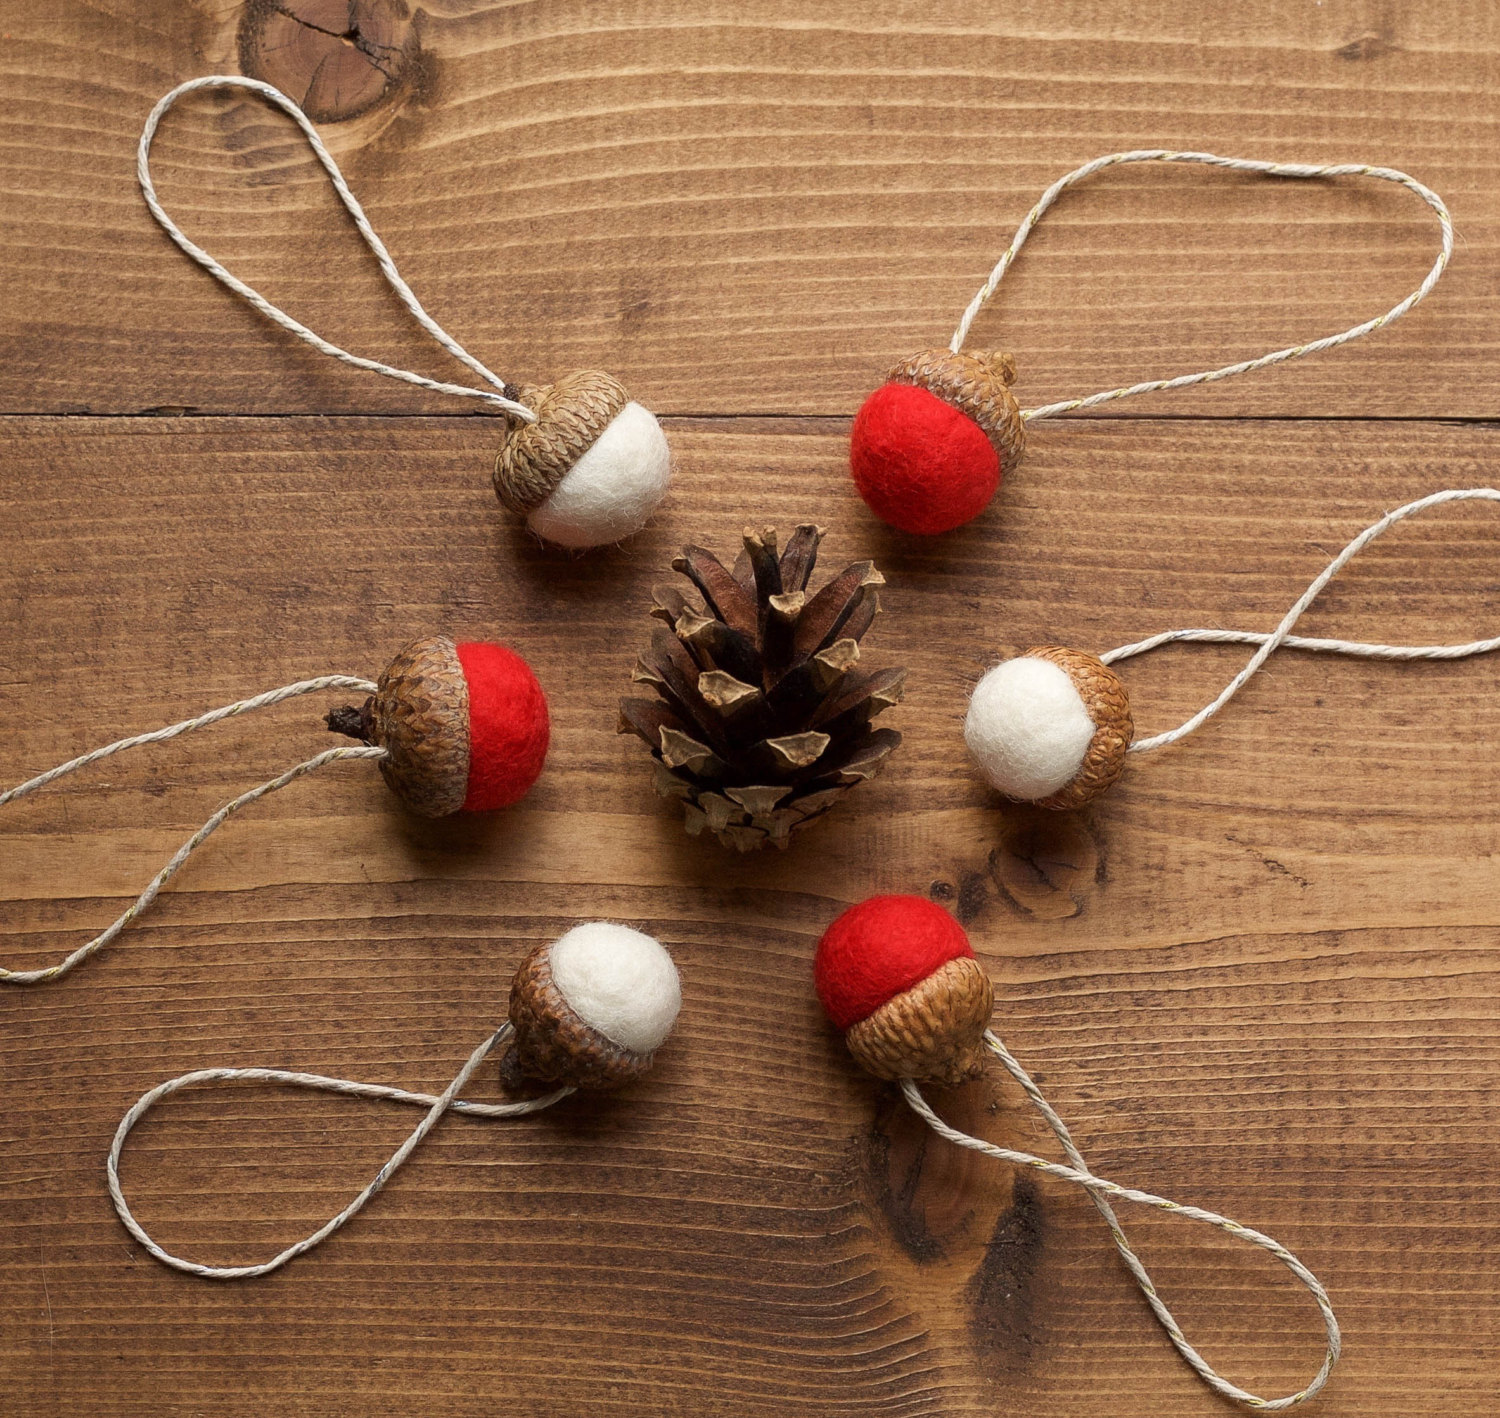 Felted Wool Ornaments For Christmas